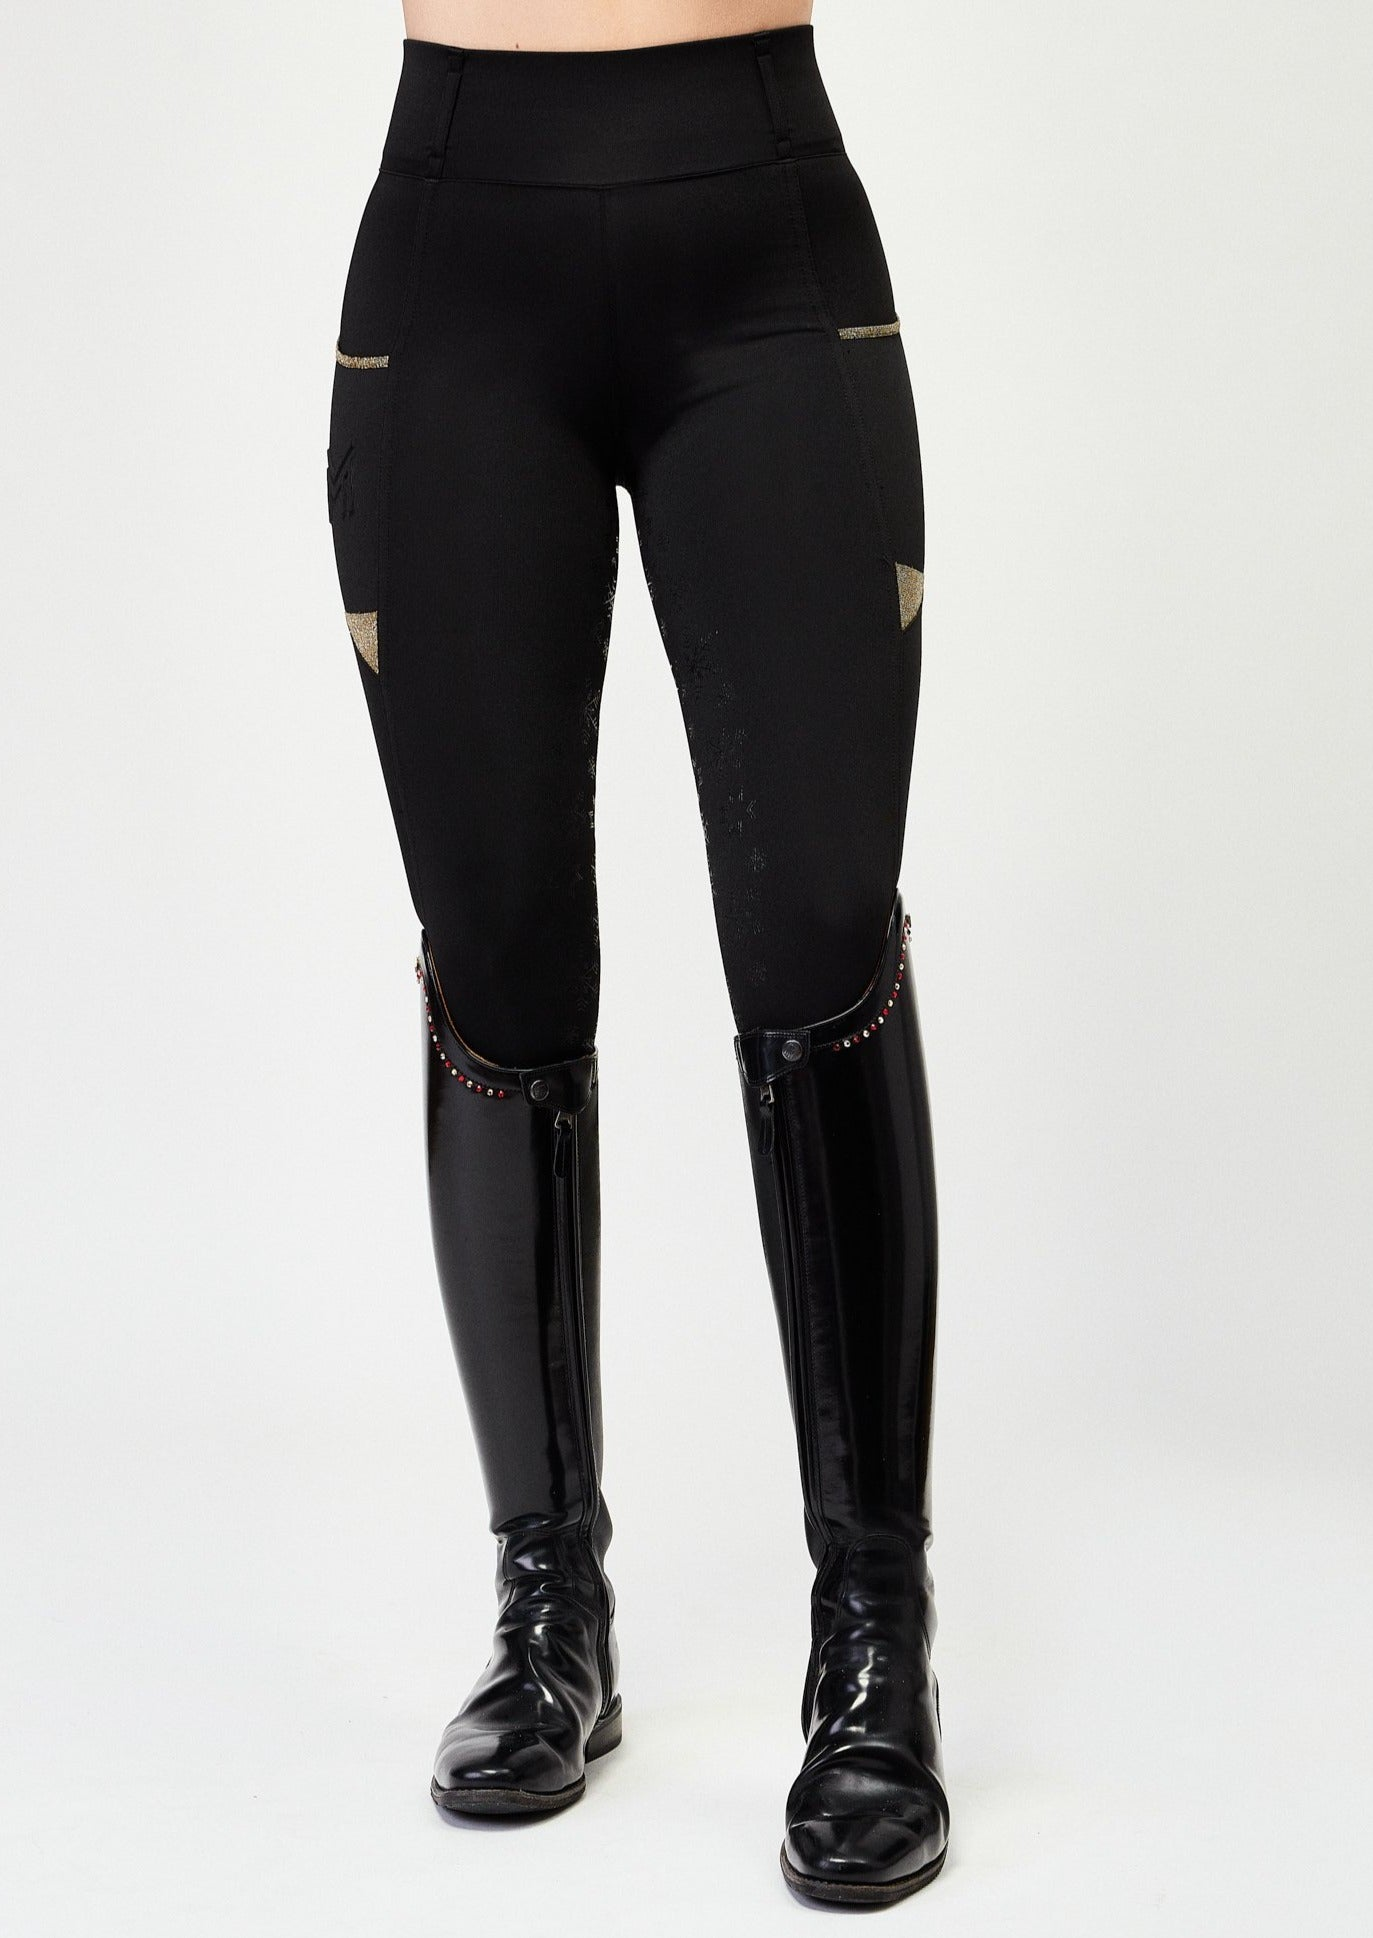 """Winter"" Limited Edition Leggings - Black & Gold"